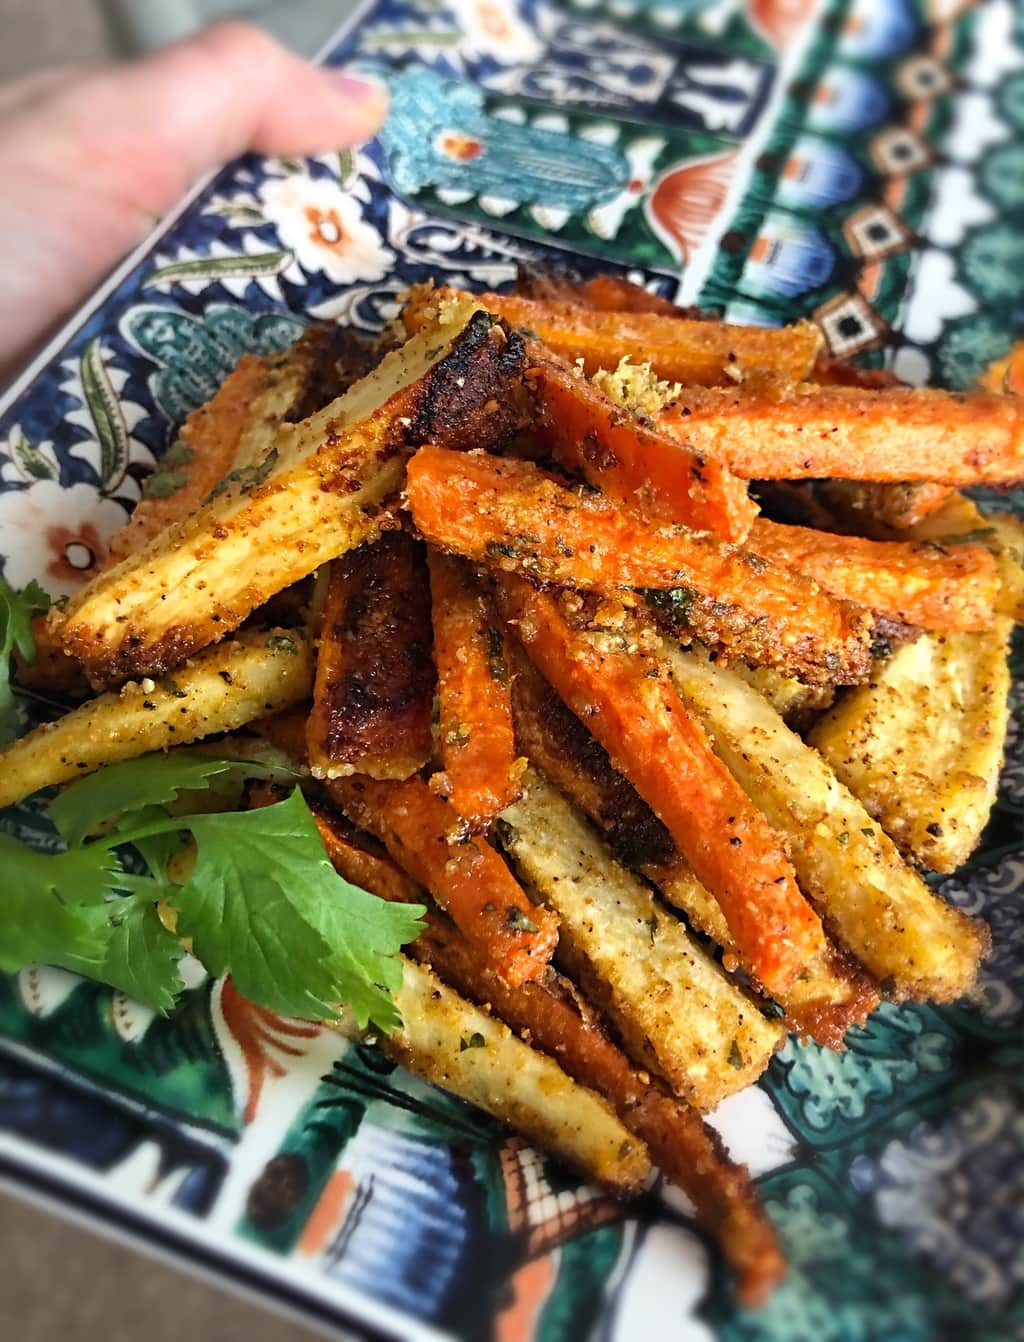 harissa root vegetables fries on a blue and orange tray